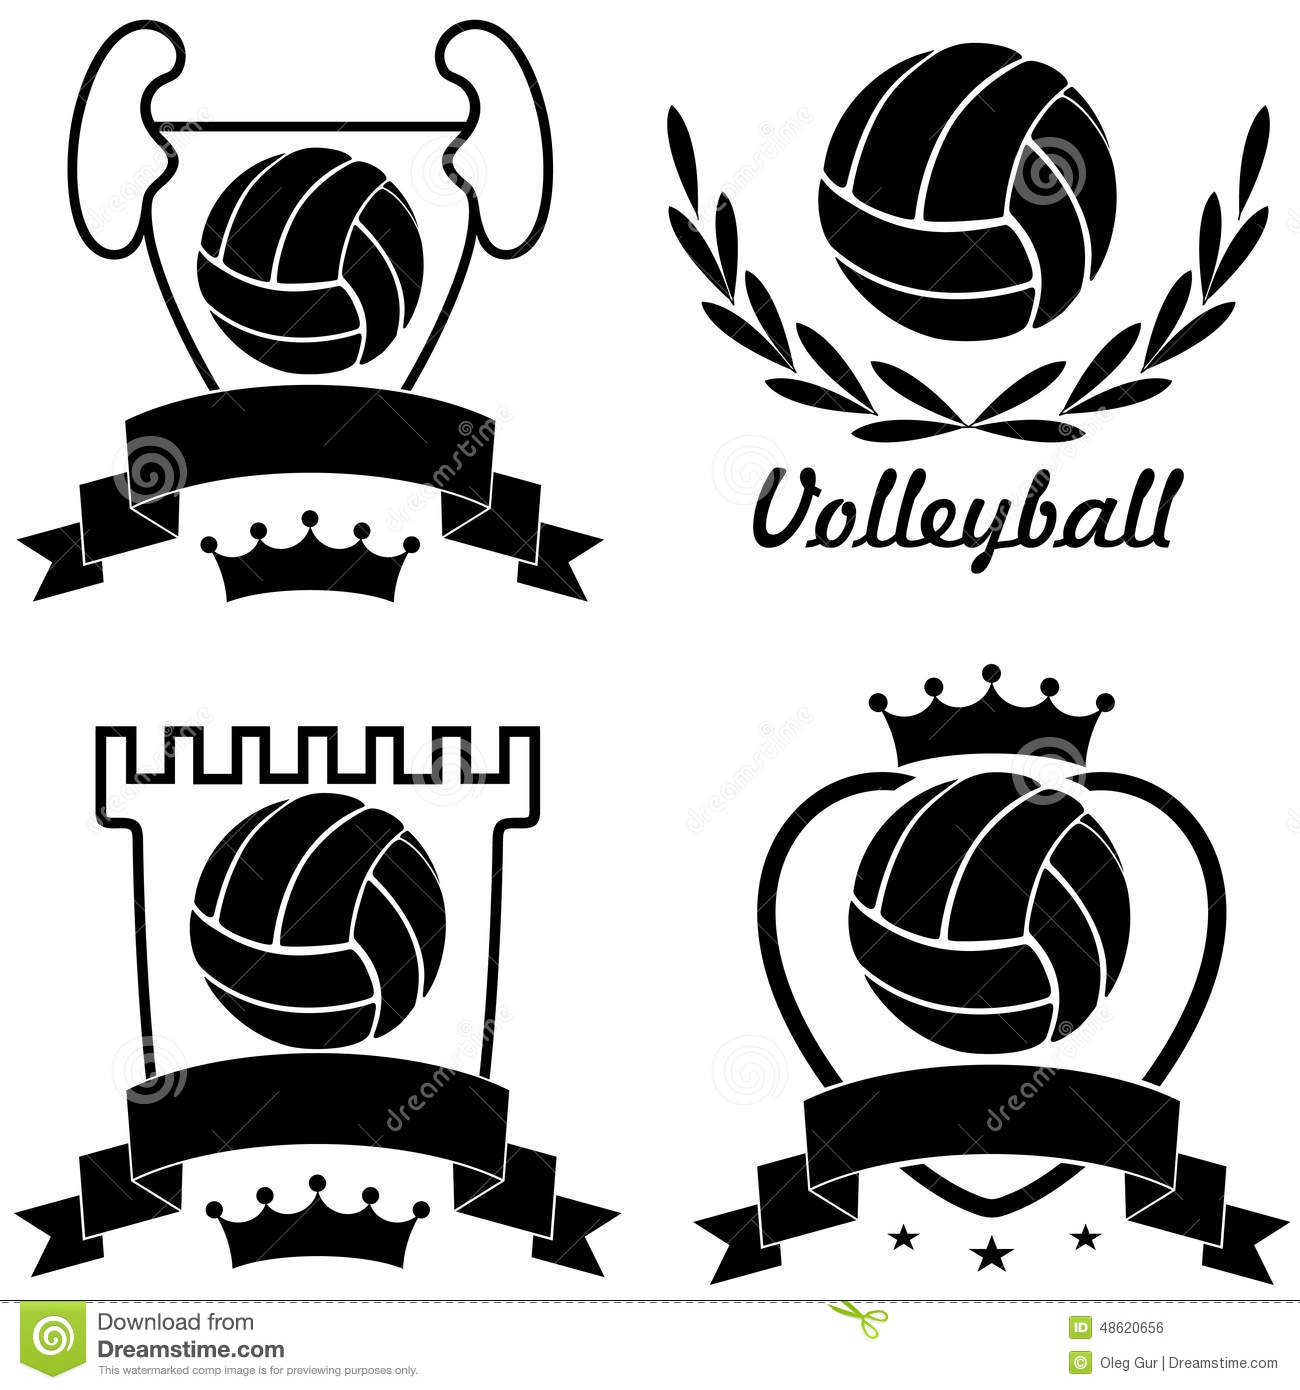 Volleyball Stock Vector